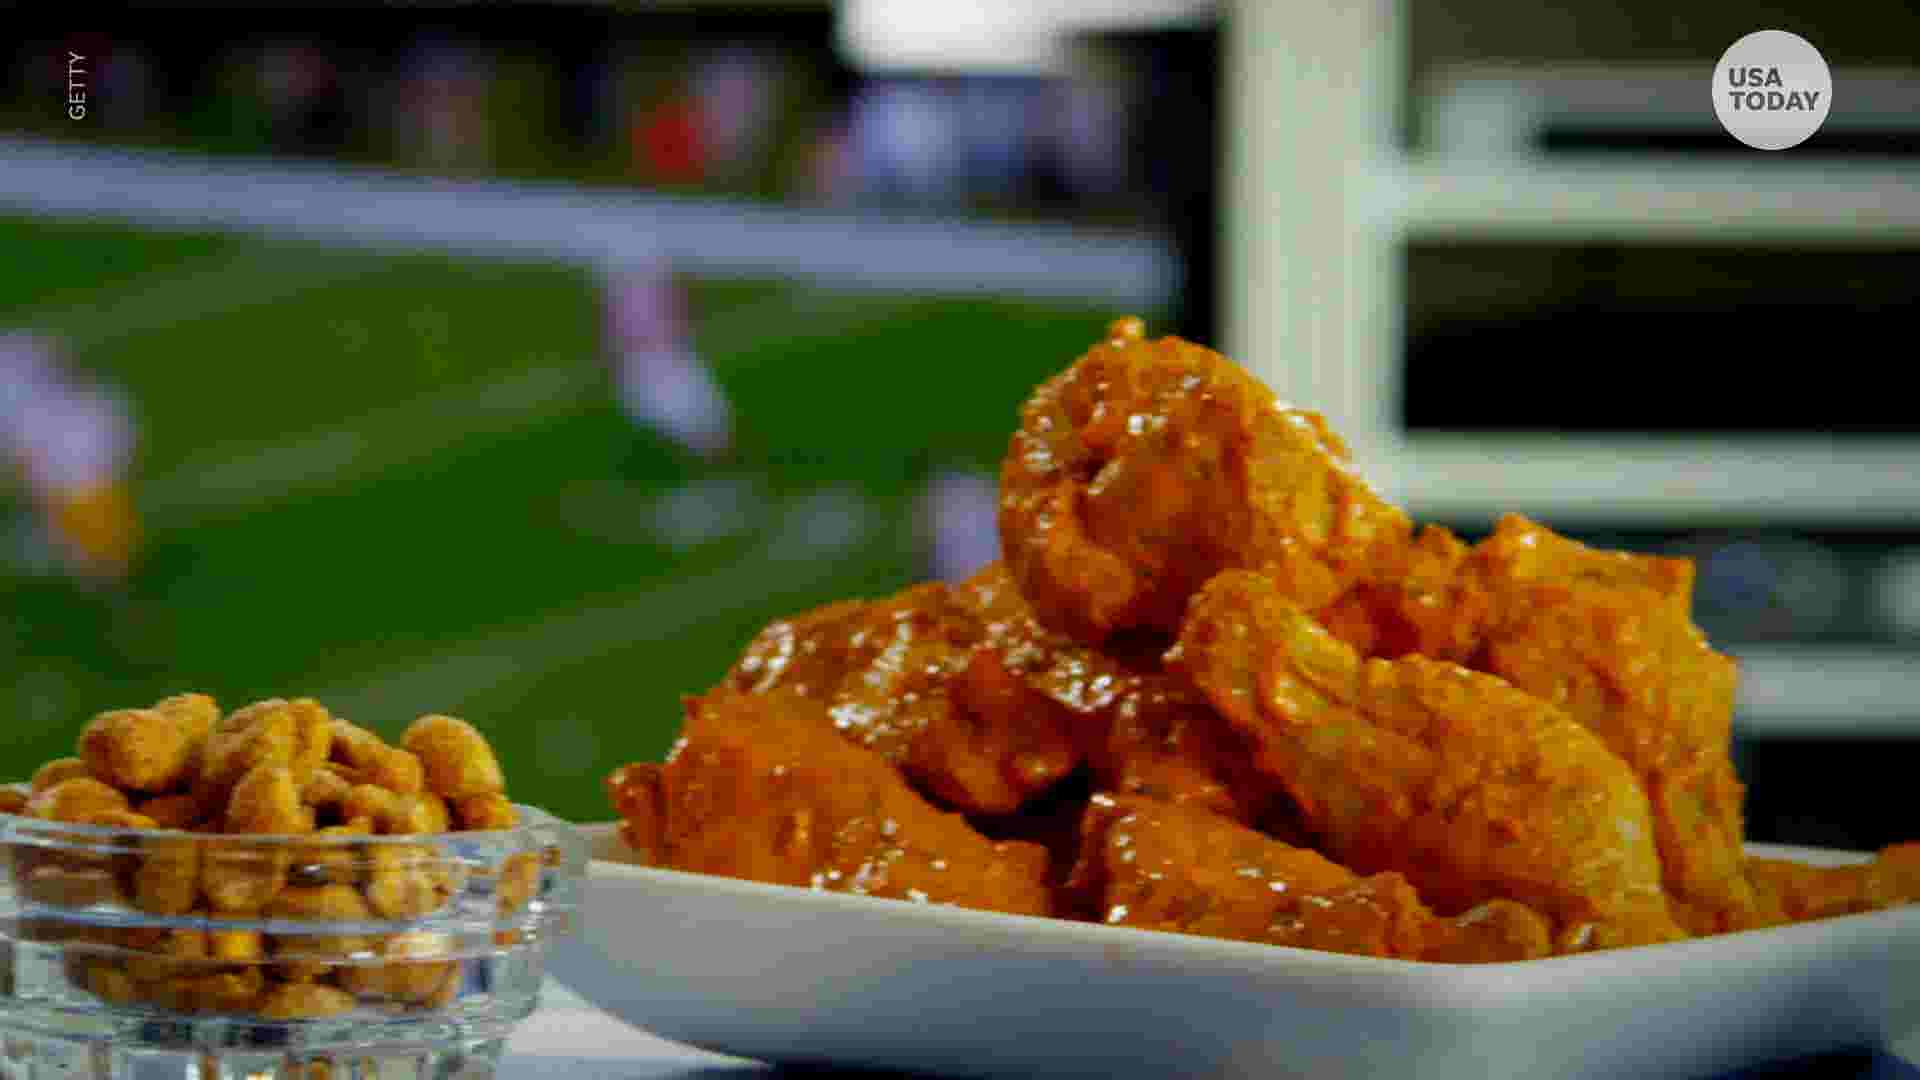 Chicken wings are what most Americans are expected to eat on Super Bowl Sunday